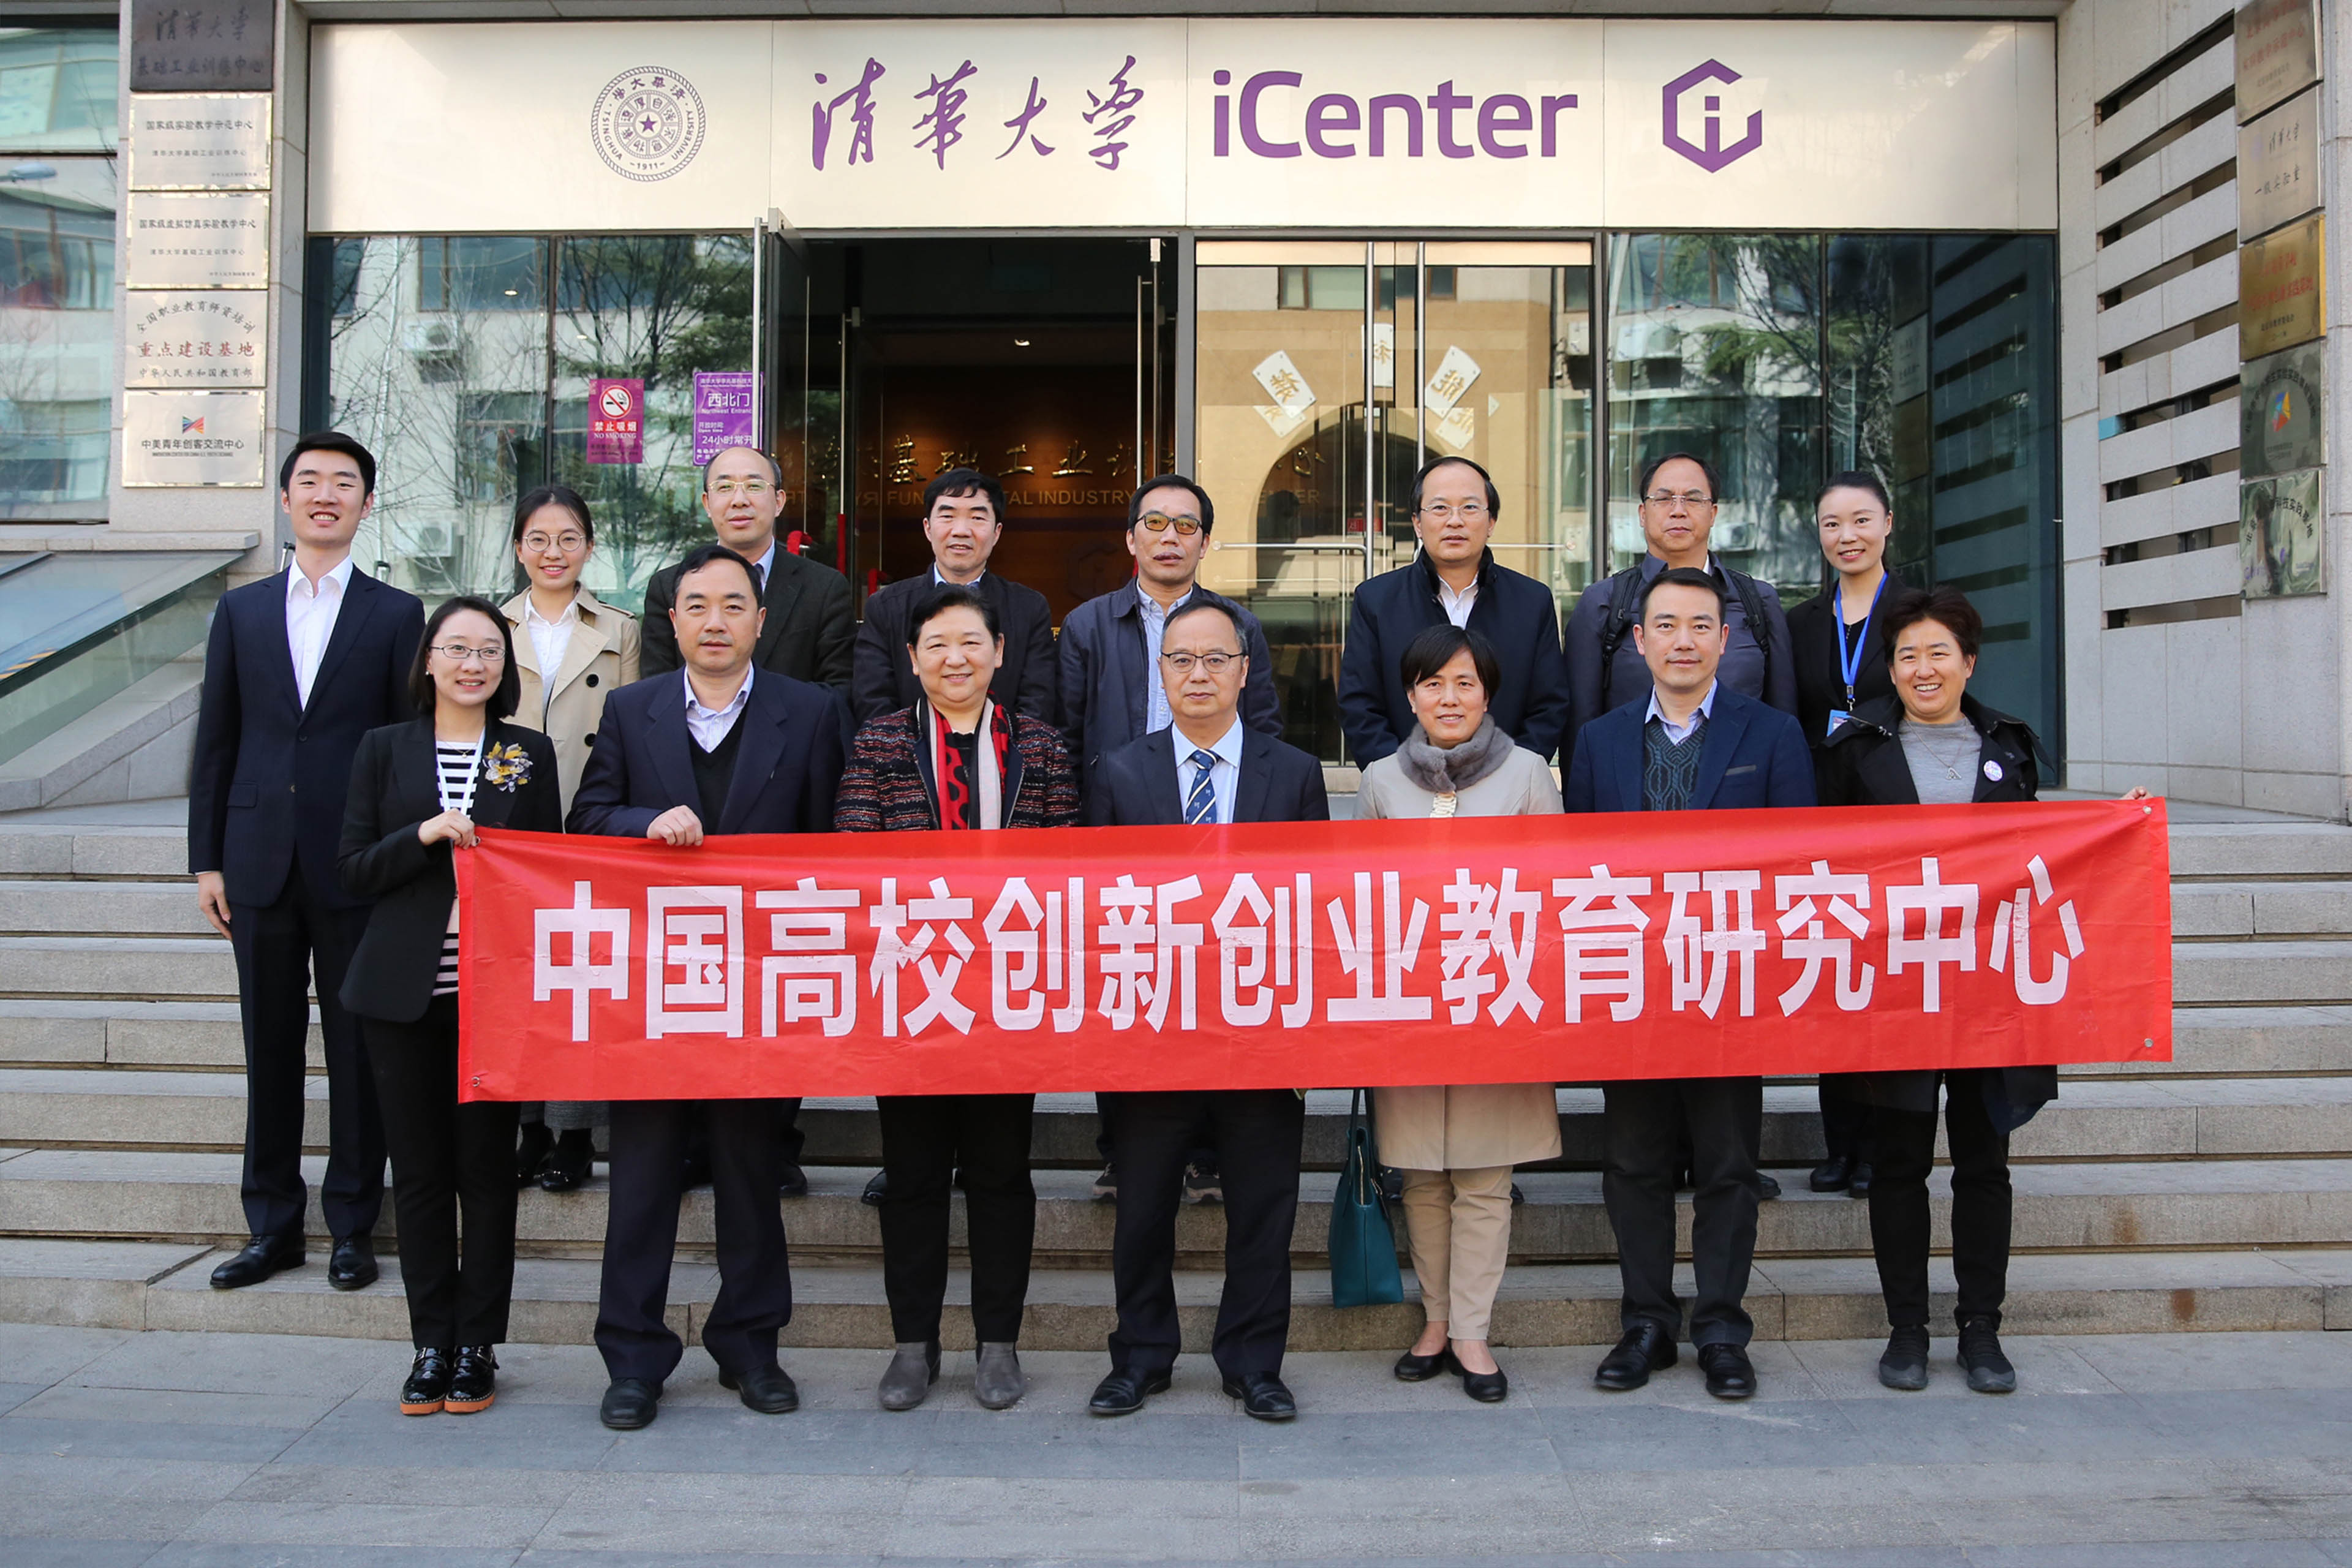 Members of the Academic Committee of the Innovation and Entrepreneurship Education Alliance of China